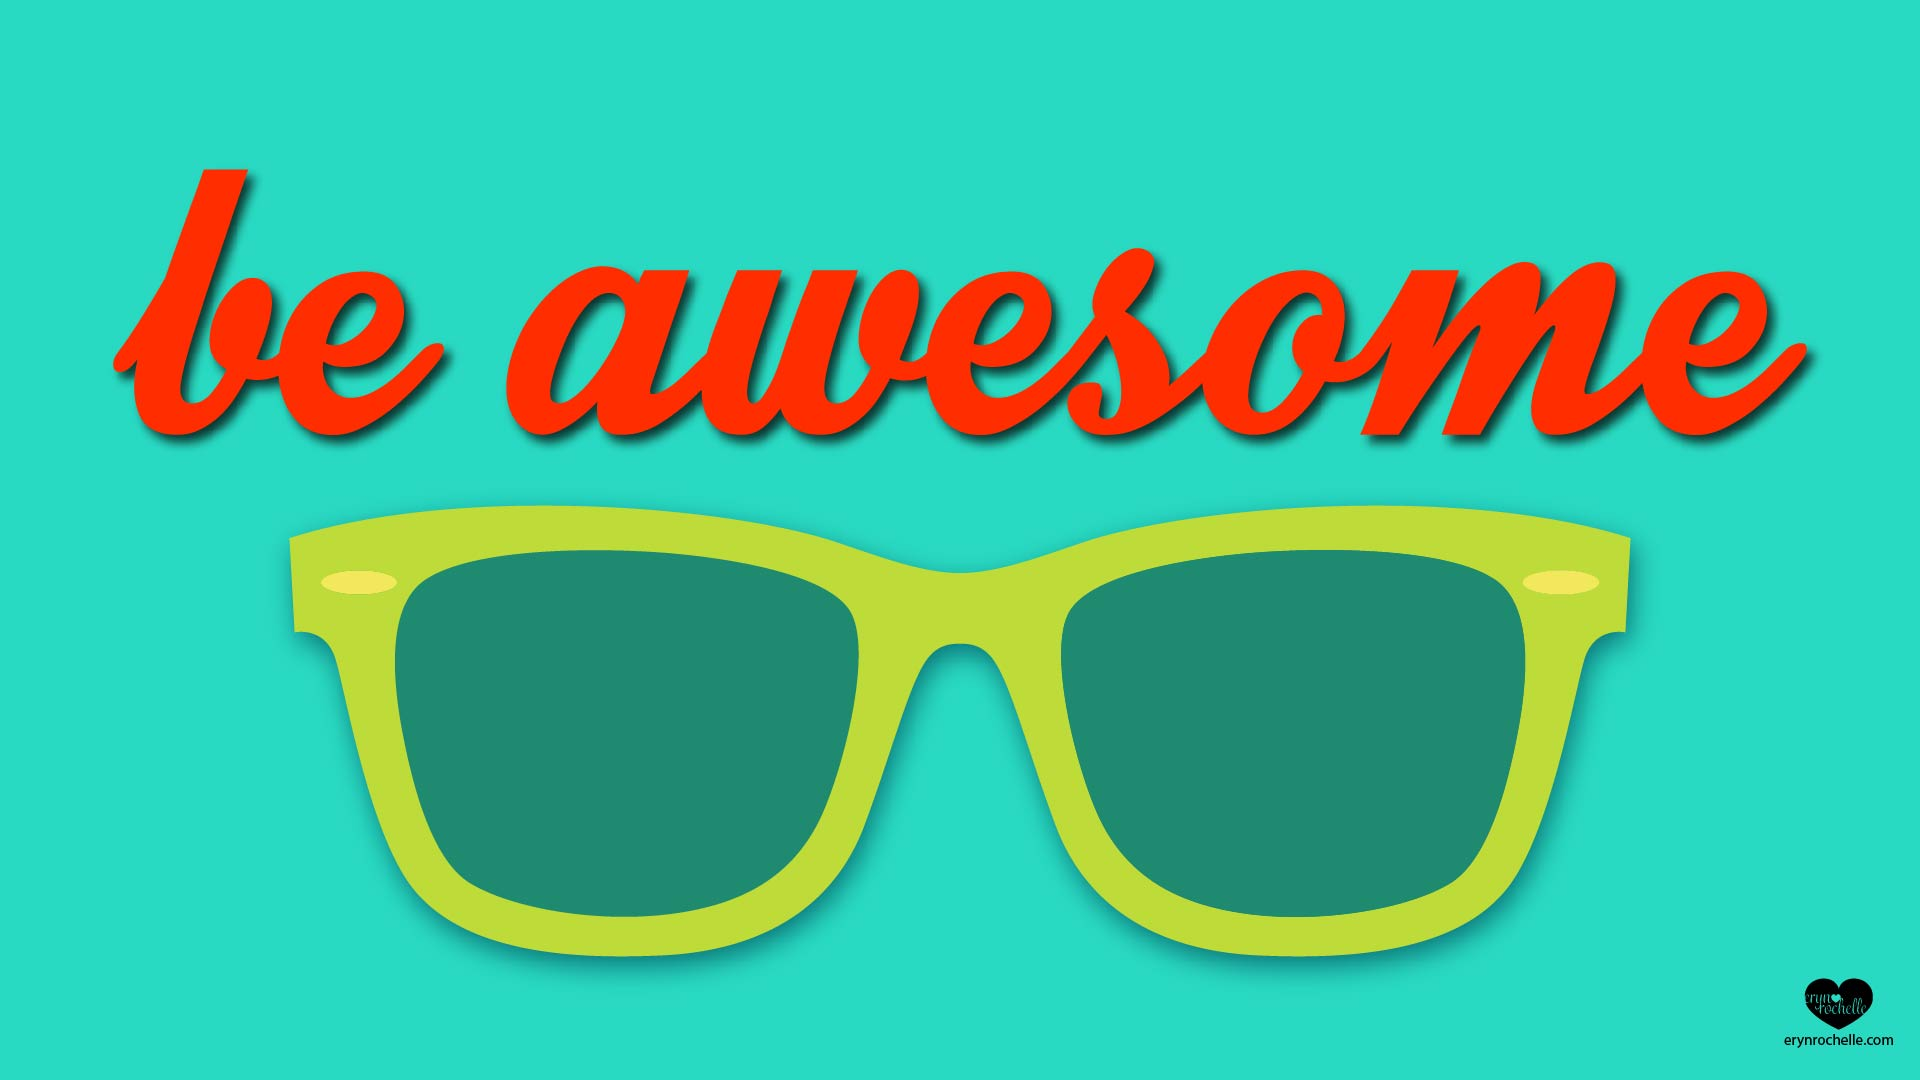 Be Awesome Wallpaper - Free Download